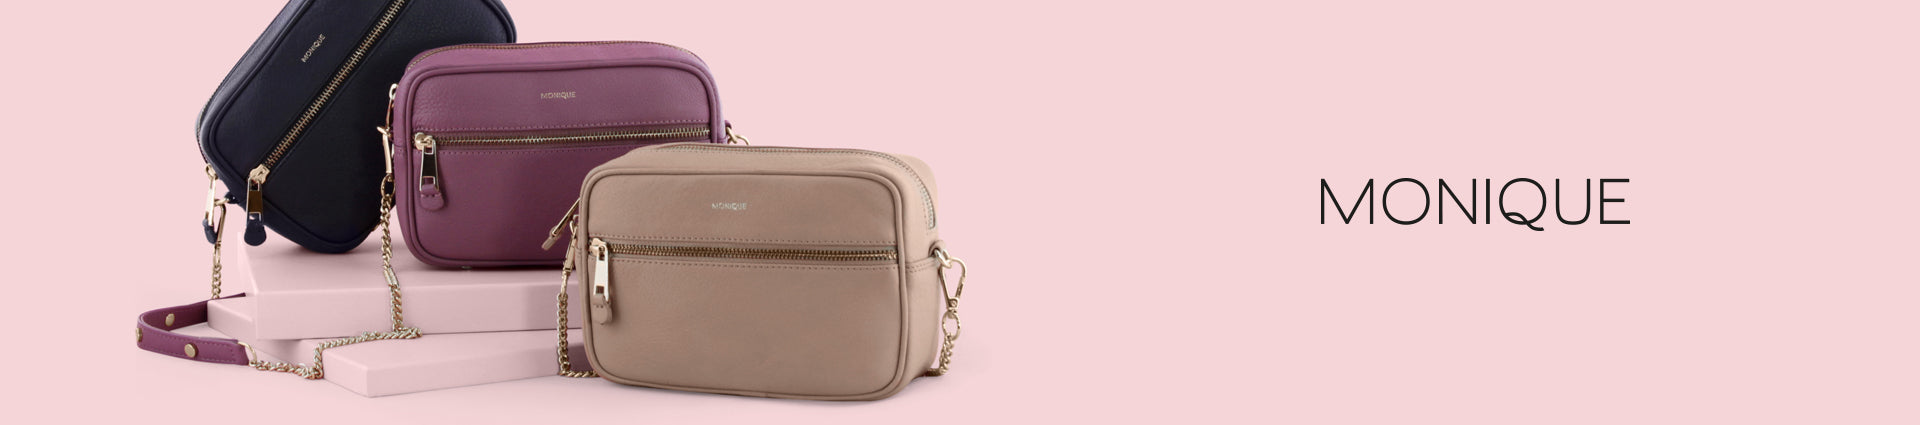 Monique Spring Summer Collection luxury leather accessories